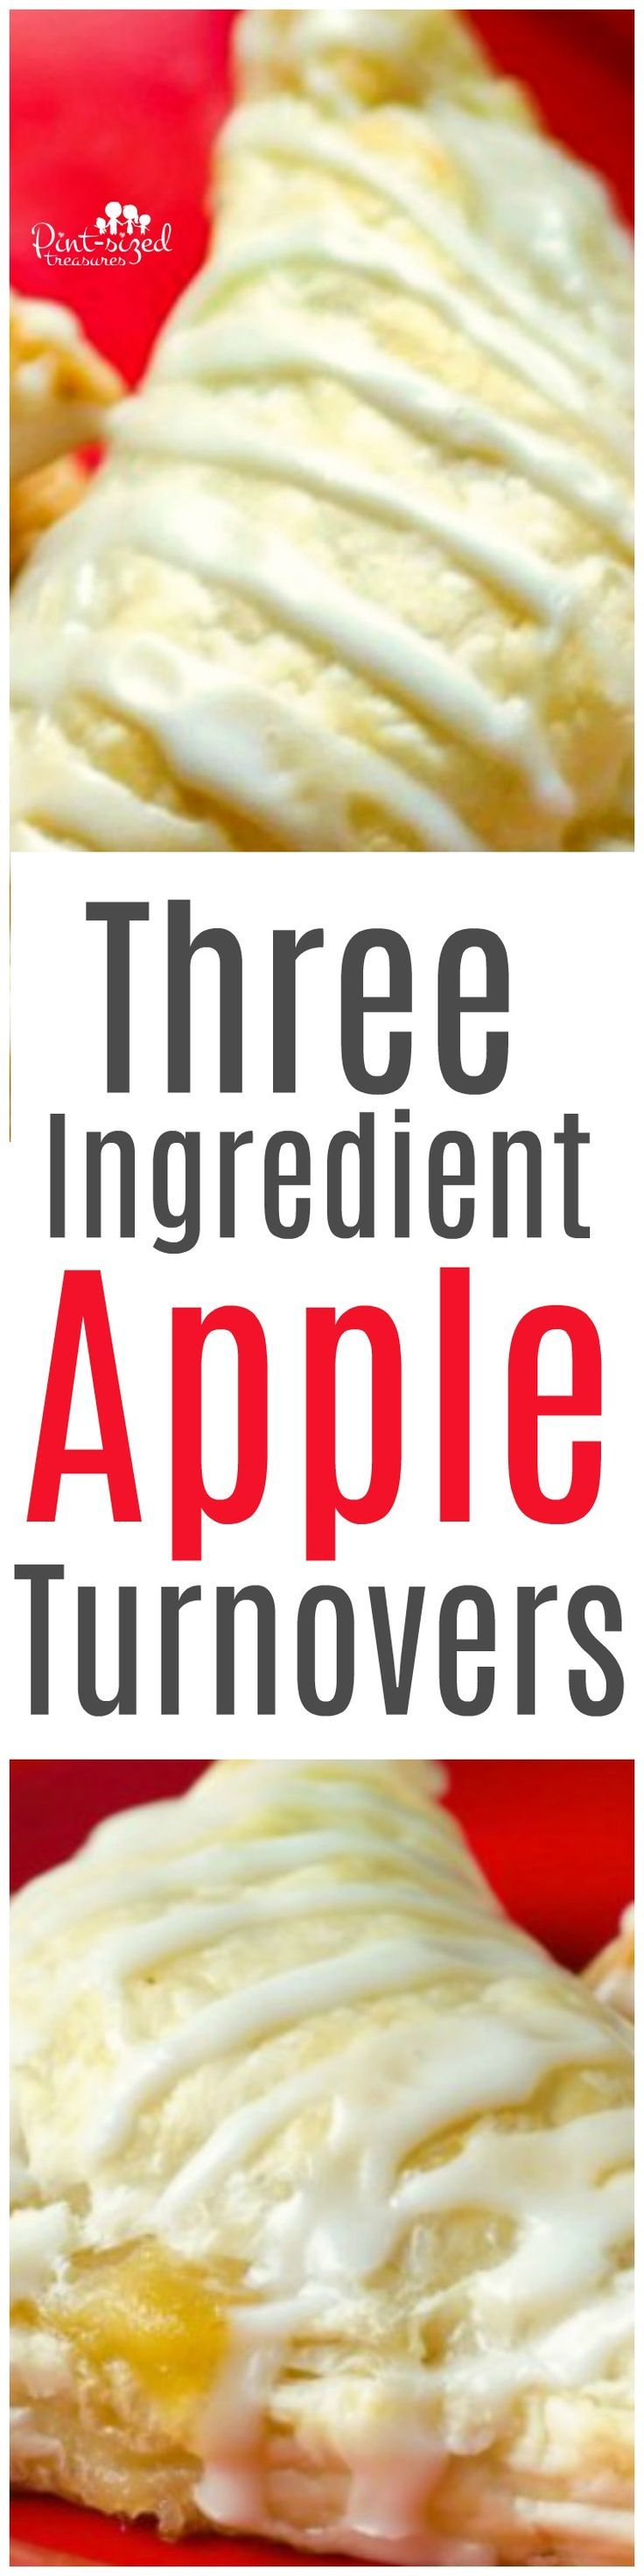 3 Ingredient Easy Apple Turnovers Only three ingredients are needed to bake up these super easy and crazy yummy apple turnovers! This easy apple turnovers recipe is so easy you can ALMOST make it in your sleep -- almost...;0)